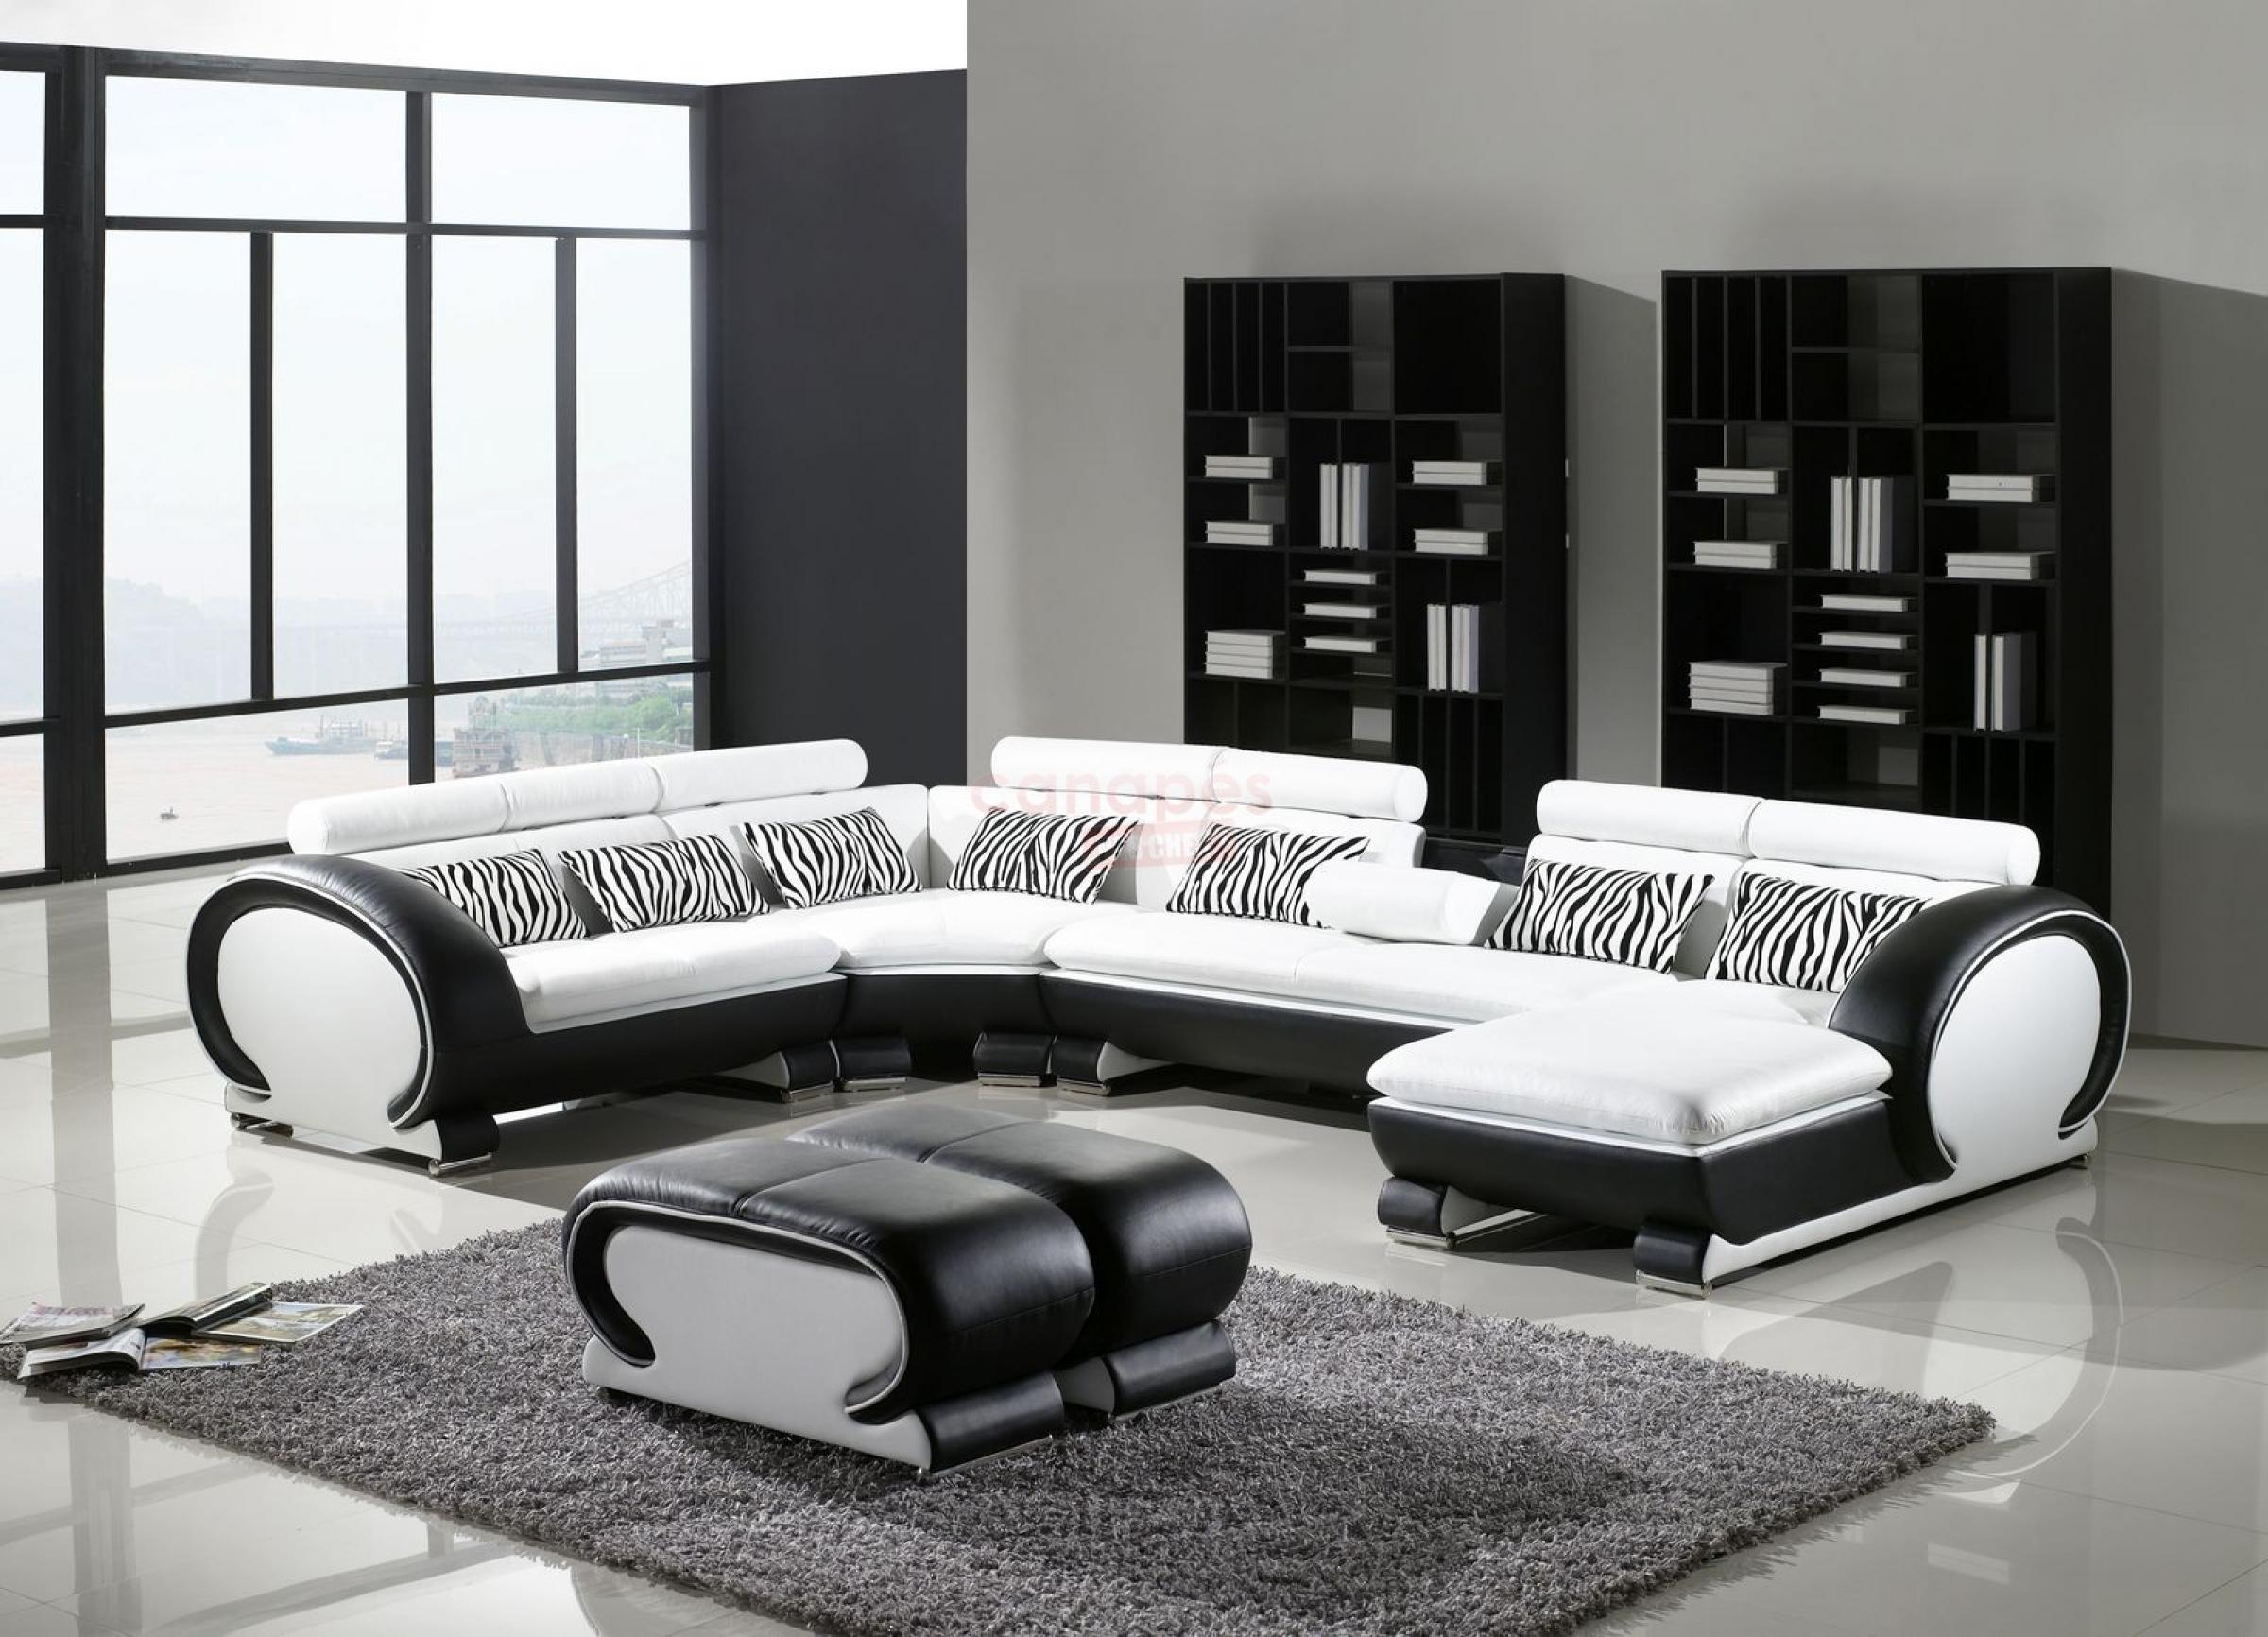 photos canap design pas cher belgique. Black Bedroom Furniture Sets. Home Design Ideas